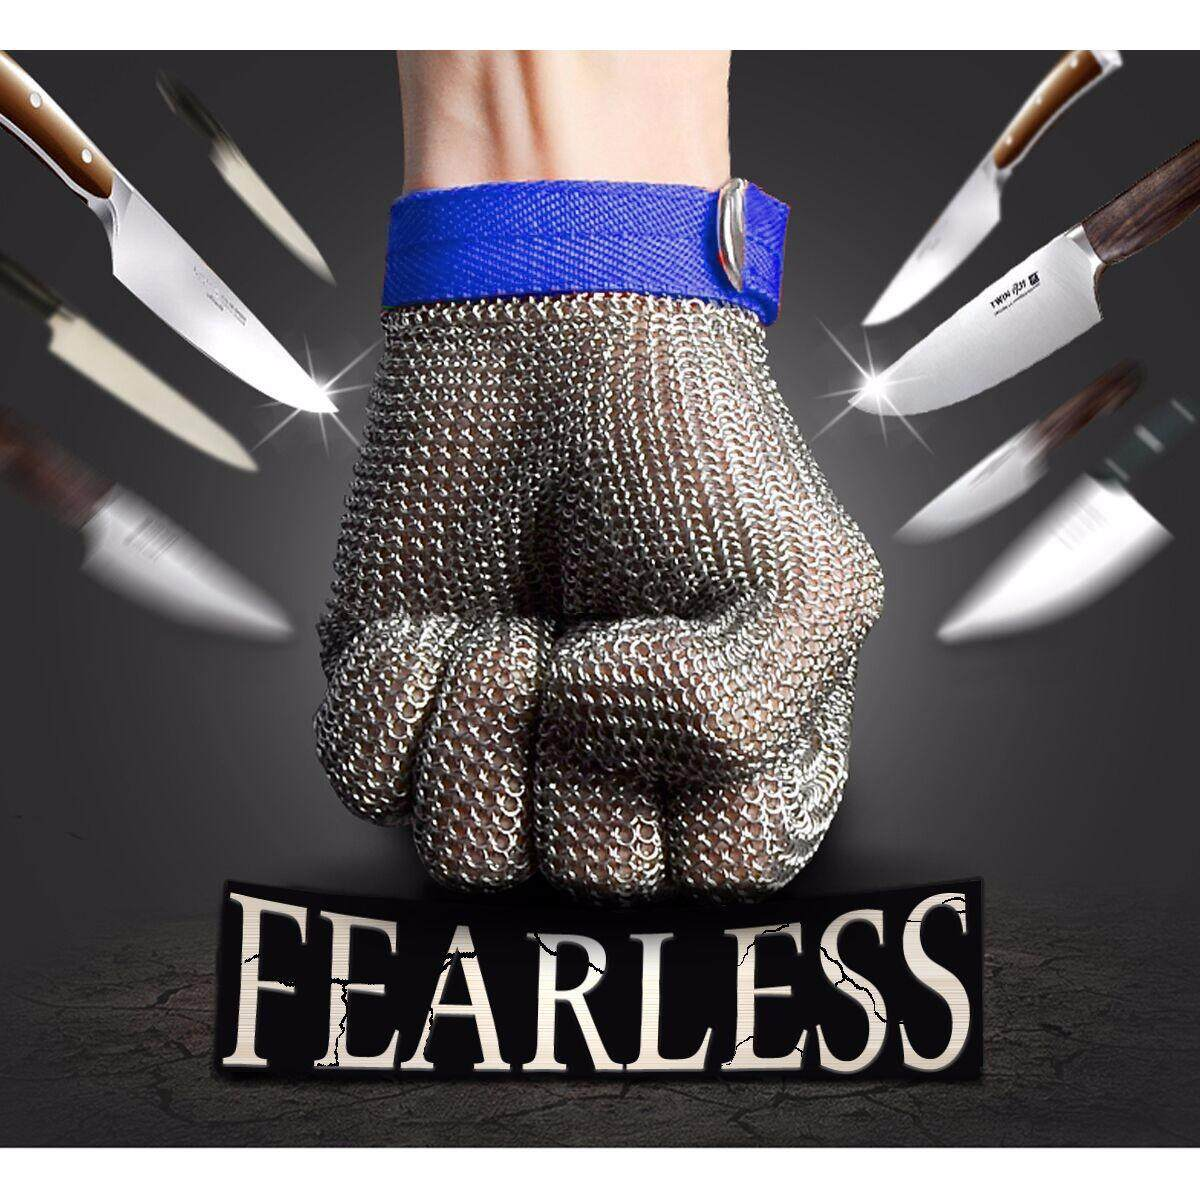 Safety Cut Proof Stab Resistant Stainless Steel Metal Mesh Butcher Glove [Size M]